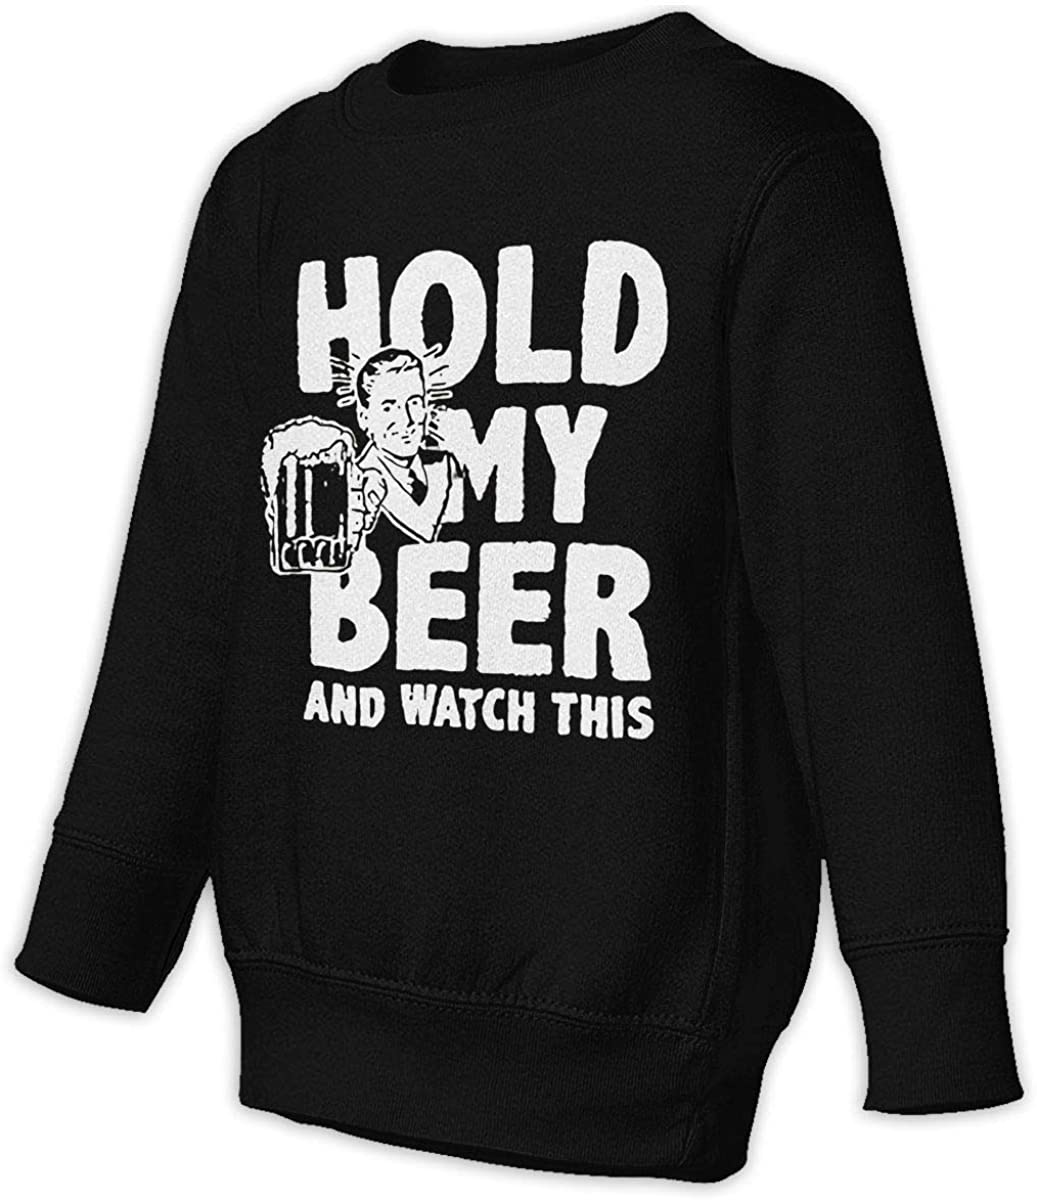 NOT Hold My Beer Unisex Sweatshirt Youth Boy and Girls Pullover Sweatshirt Black